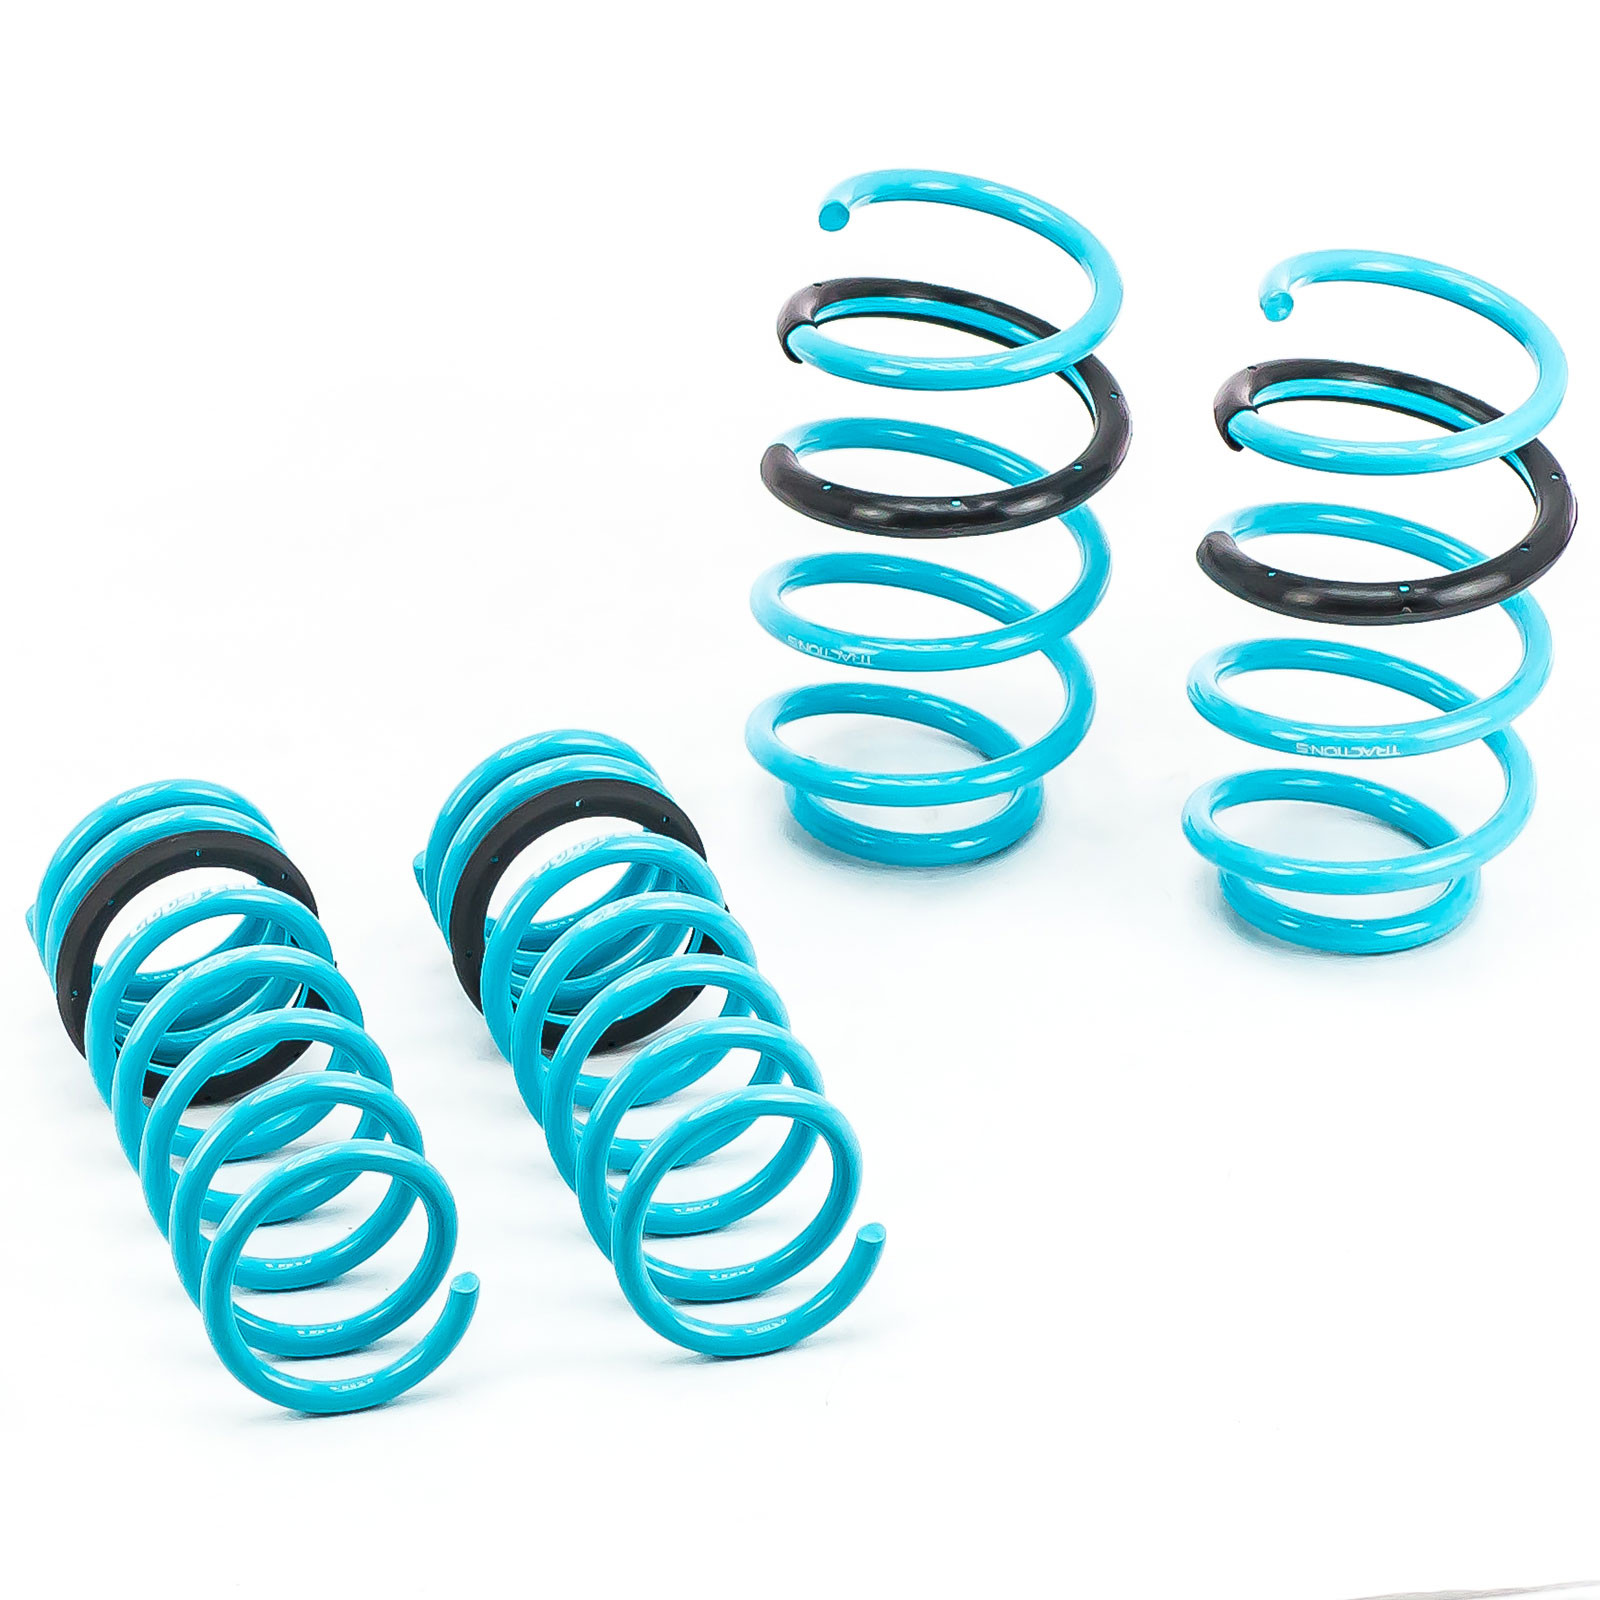 Improve Overall Handling And Steering Response Godspeed LS-TS-FD-0005 Traction-S Performance Lowering Springs